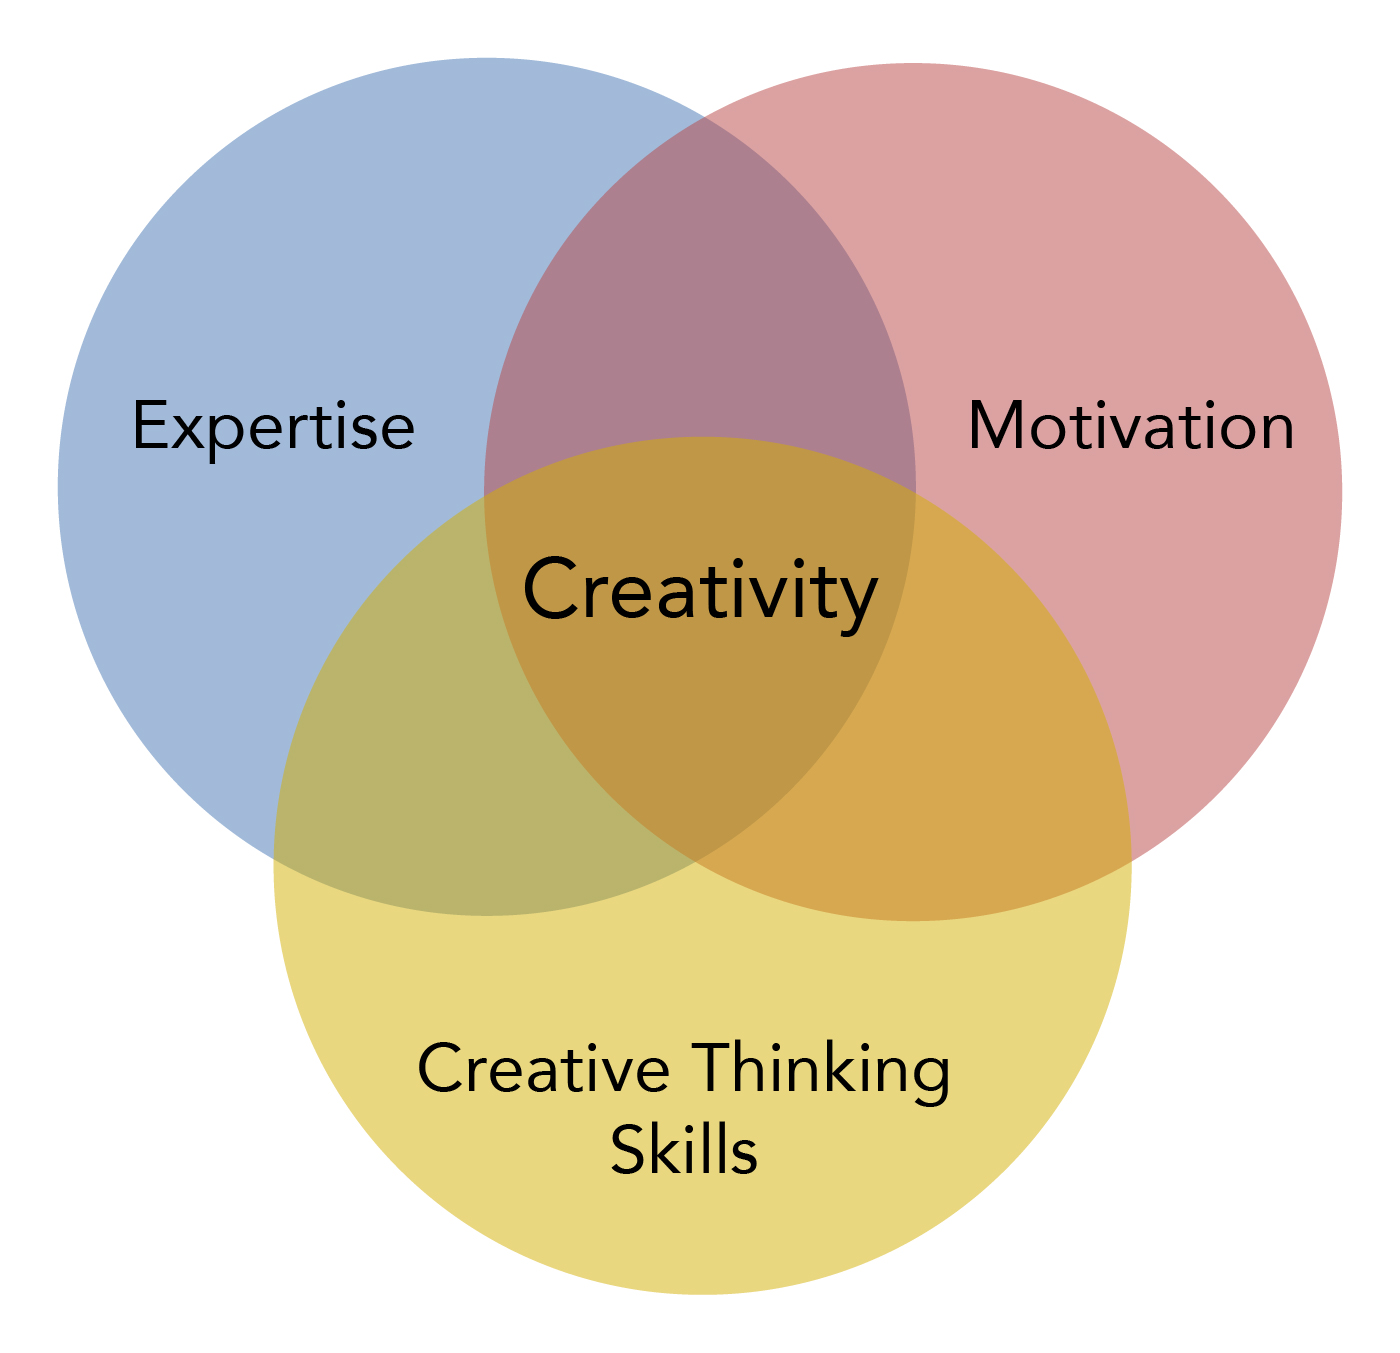 Three components of creativity. Expertise, Creative Thinking Skills, and Motivation come together to make creativity.